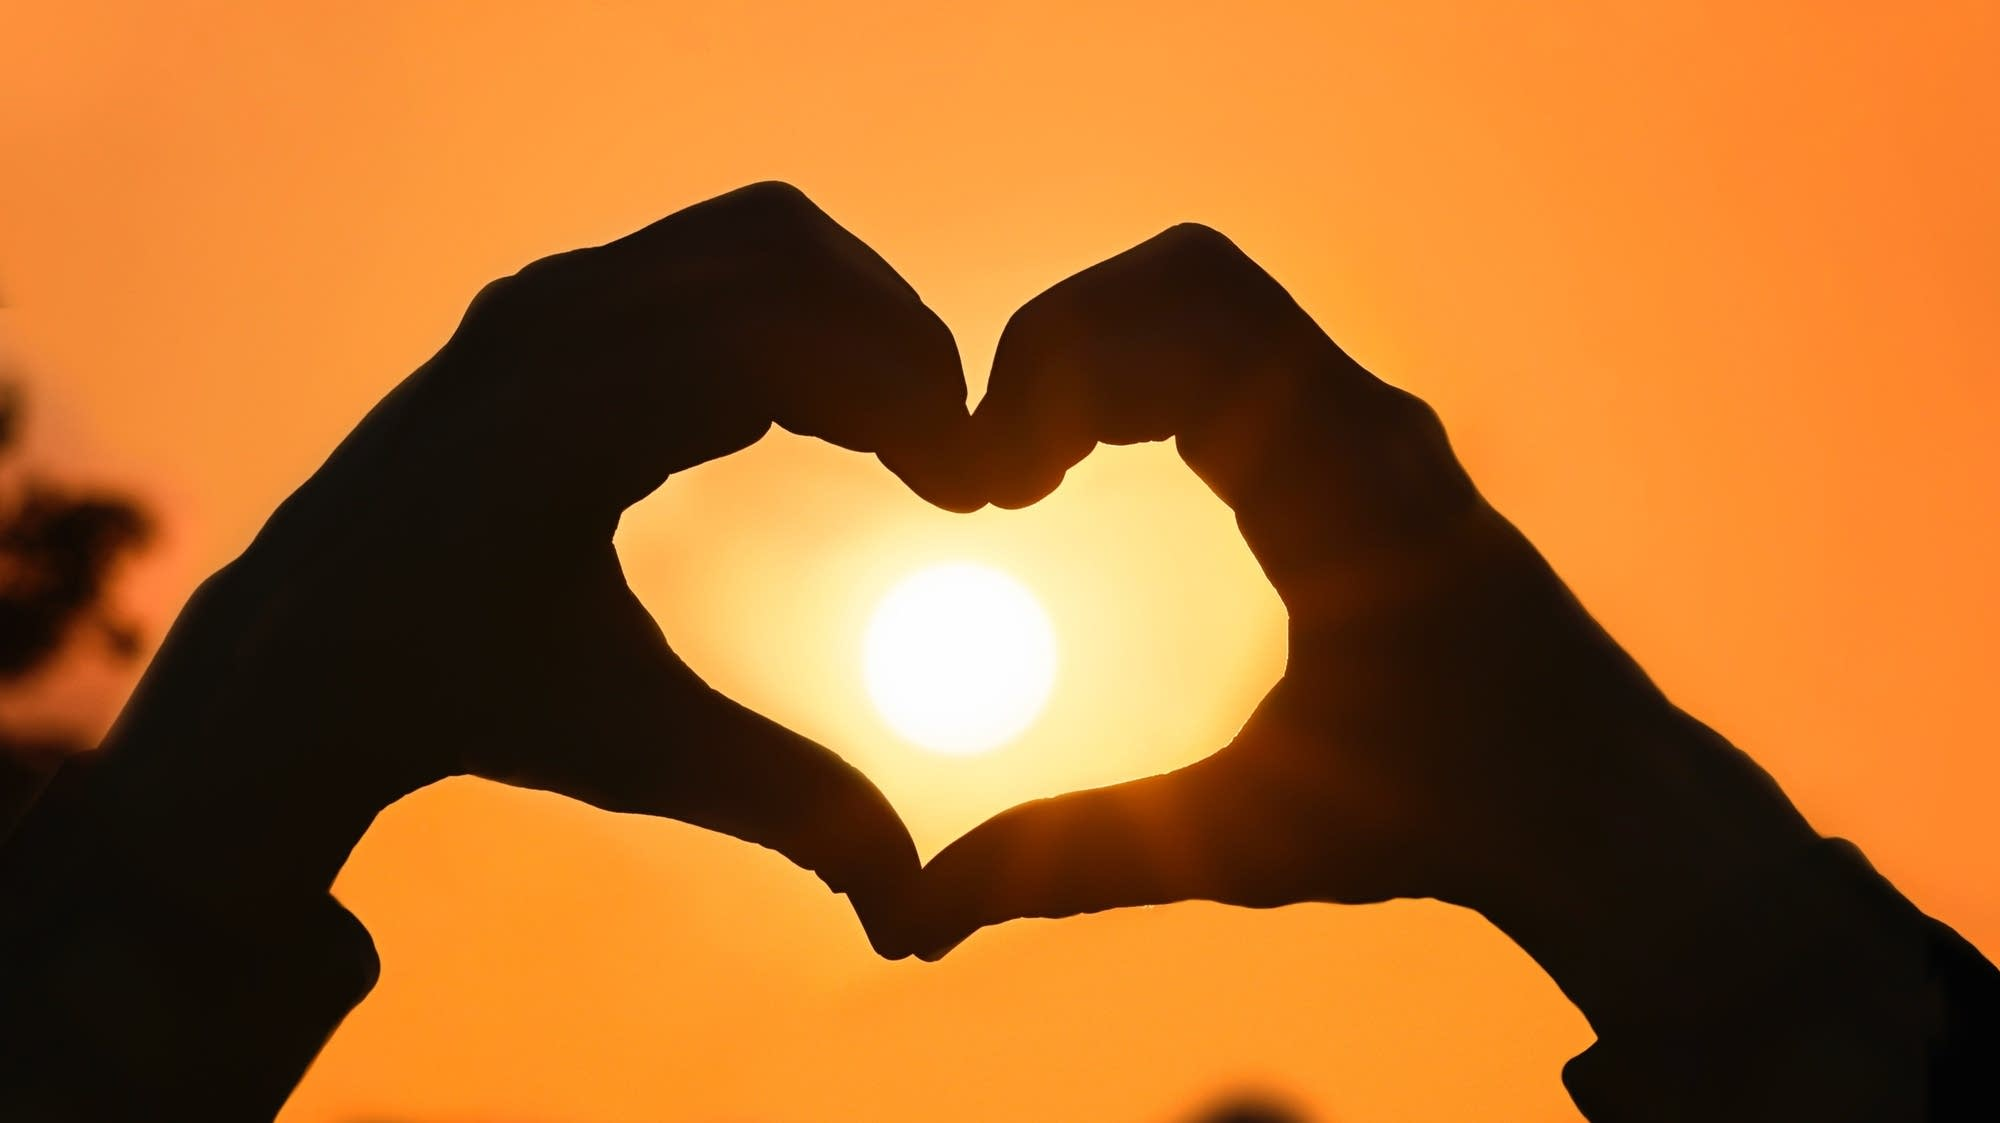 Heart-shaped hands at sunset.